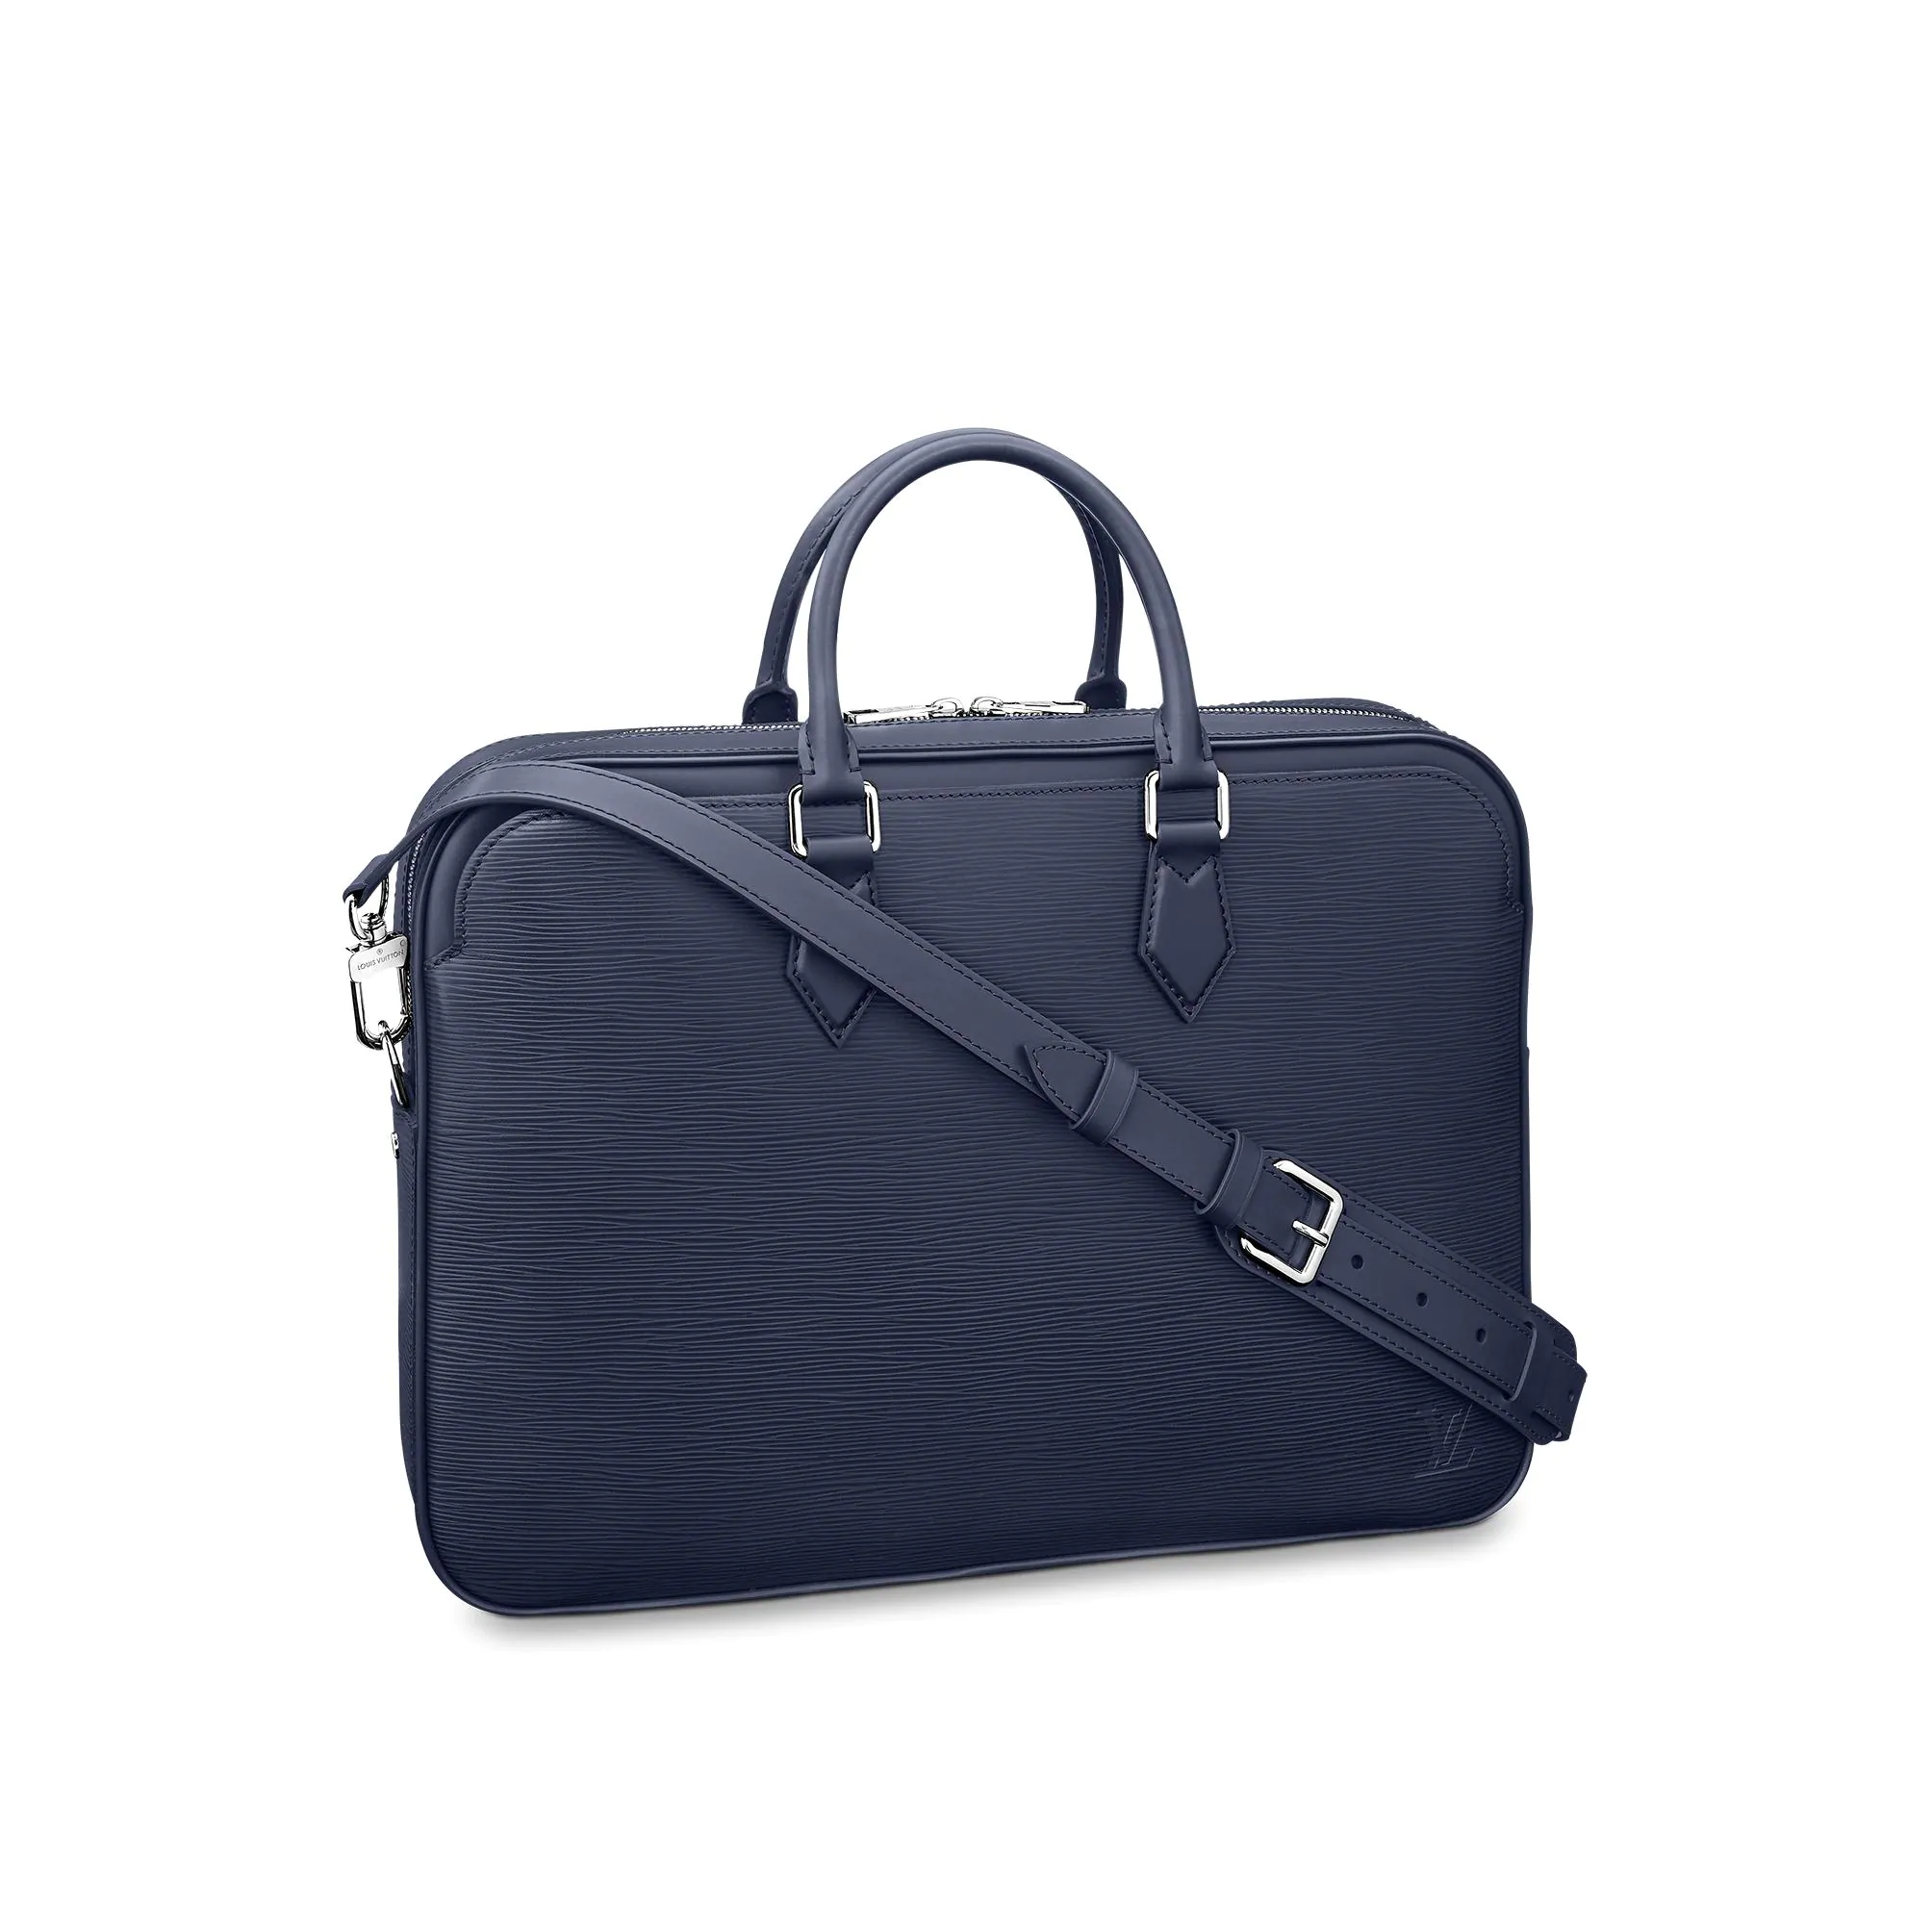 Louis Vuitton Men Dandy Briefcase Top Handle Bag in Epi Leather M54405 Blue bag